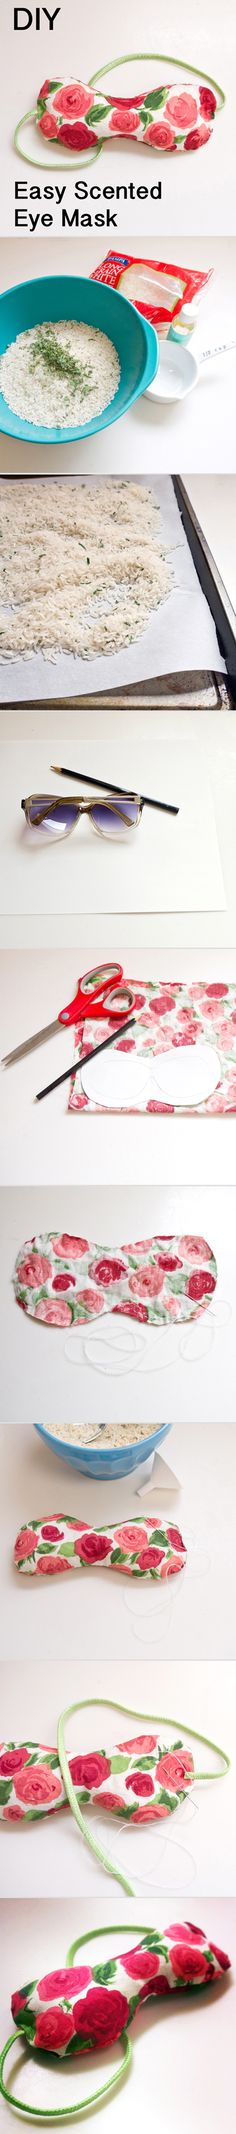 DIY ~ How to make this microwavable eyemask that's infused with herbs and relaxing essential oils!!